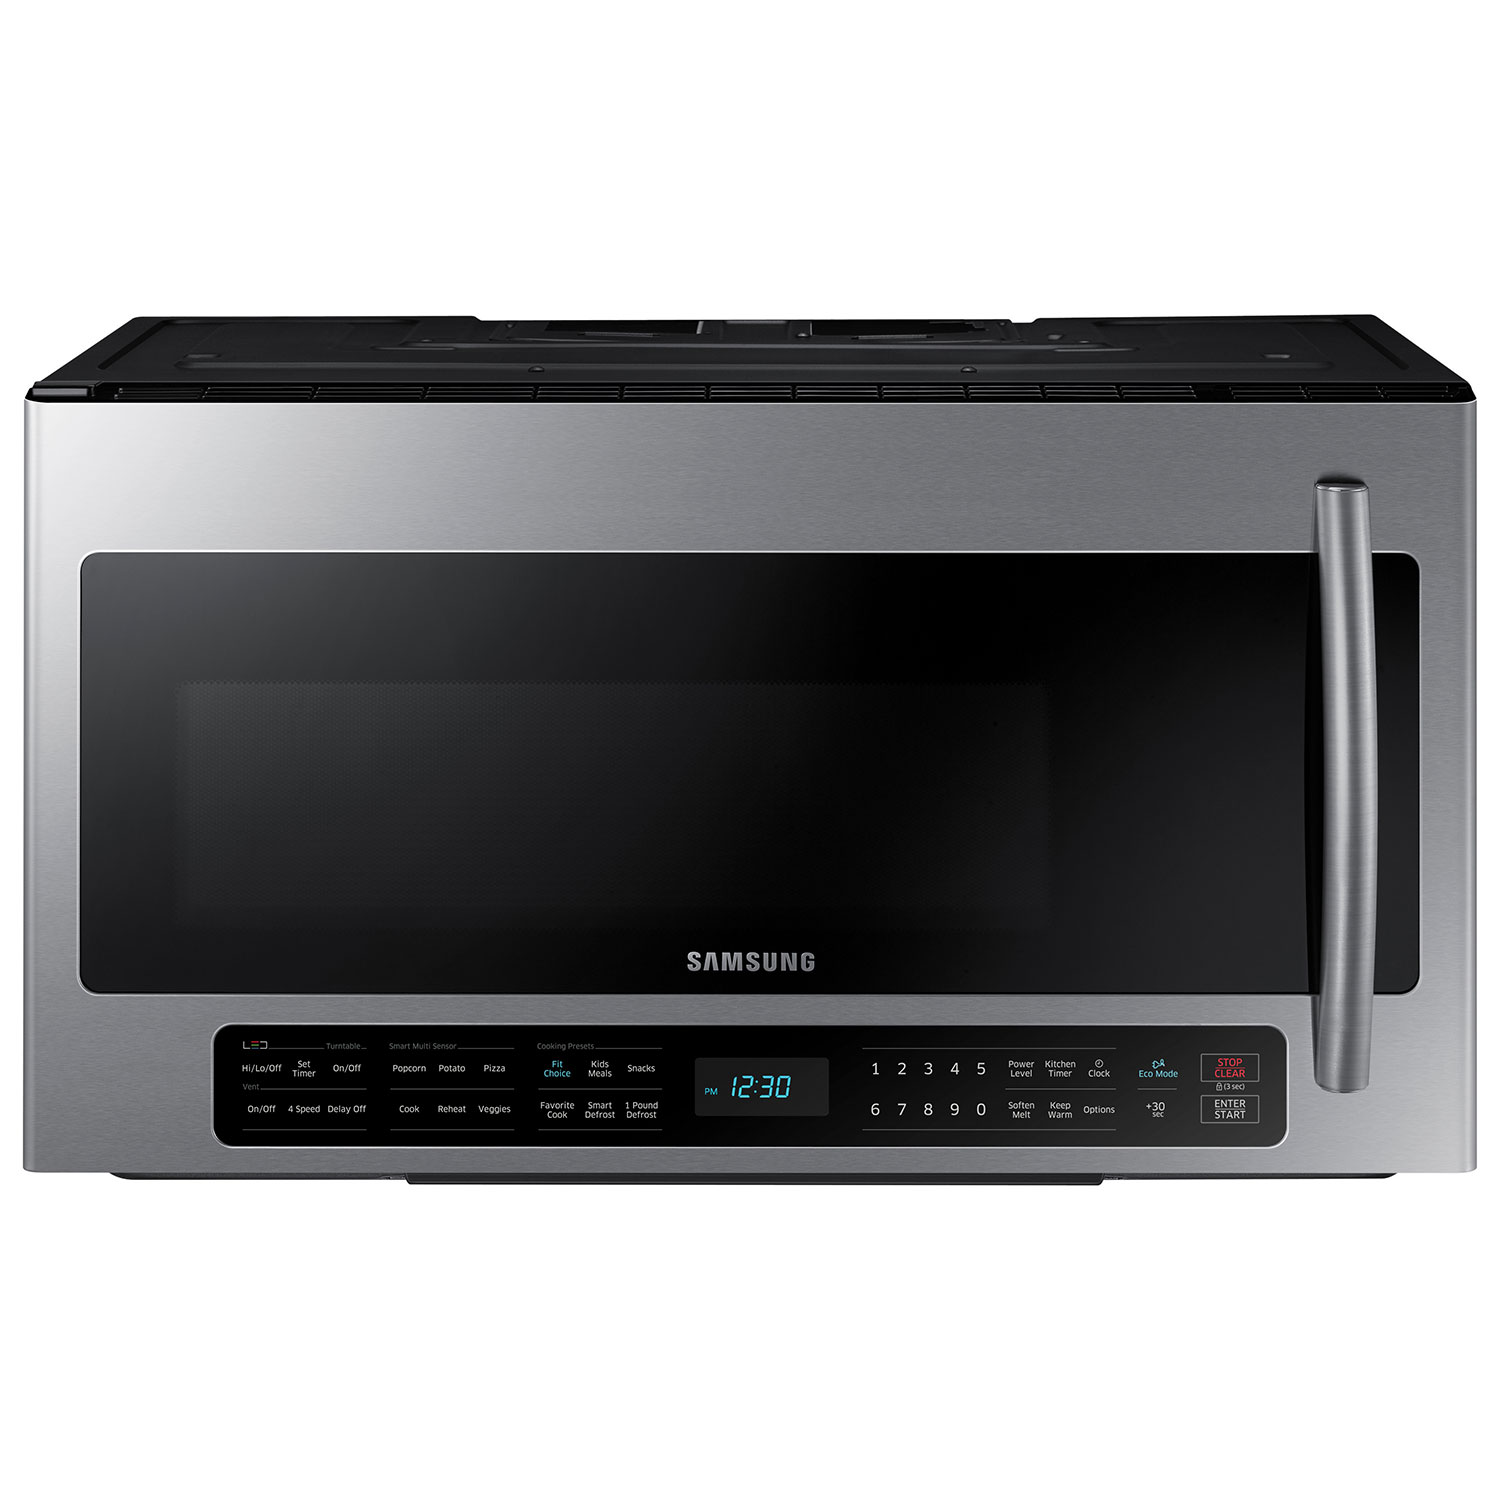 Whirlpool white ice microwave canada - Samsung Over The Range Microwave 2 1 Cu Ft Stainless Steel